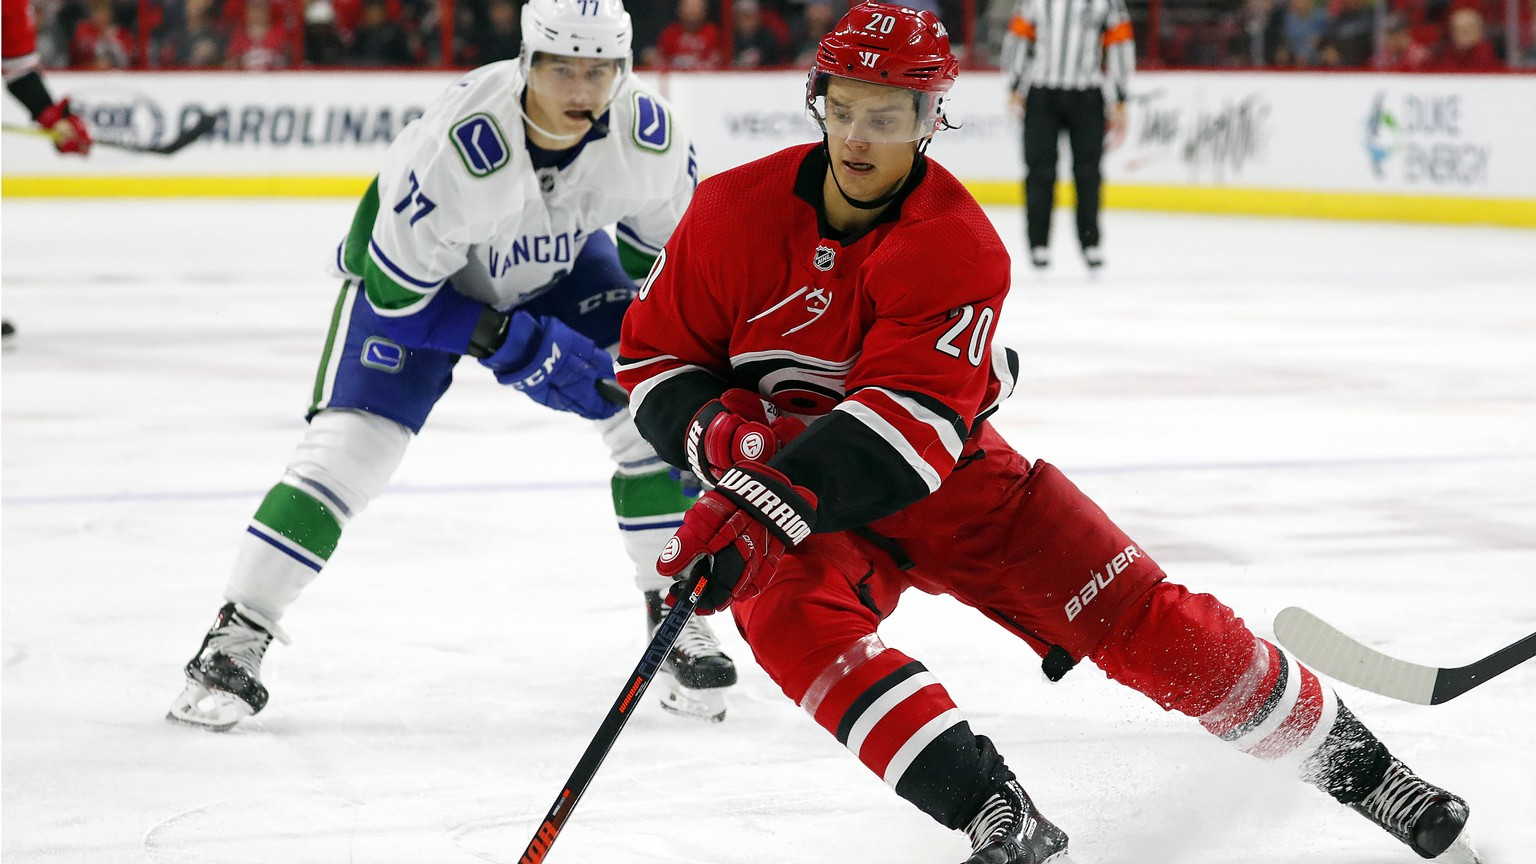 FILE - In this Oct. 9, 2018, file photo, Carolina Hurricanes' Sebastian Aho (20) gathers in the puck in front of Vancouver Canucks' Nikolay Goldobin (77) during the second period of an NHL hockey game in Raleigh, N.C. The Montreal Canadiens have tendered an offer sheet to Carolina Hurricanes restricted free agent forward Sebastian Aho..The offer sheet is worth $42.27 million over five years, an annual salary cap hit of $8.54 million. If Carolina does not match it, the Canadiens must send a first-, second- and third-round pick to the Hurricanes. It's the first offer sheet in the NHL since 2013. (AP Photo/Karl B DeBlaker, File)